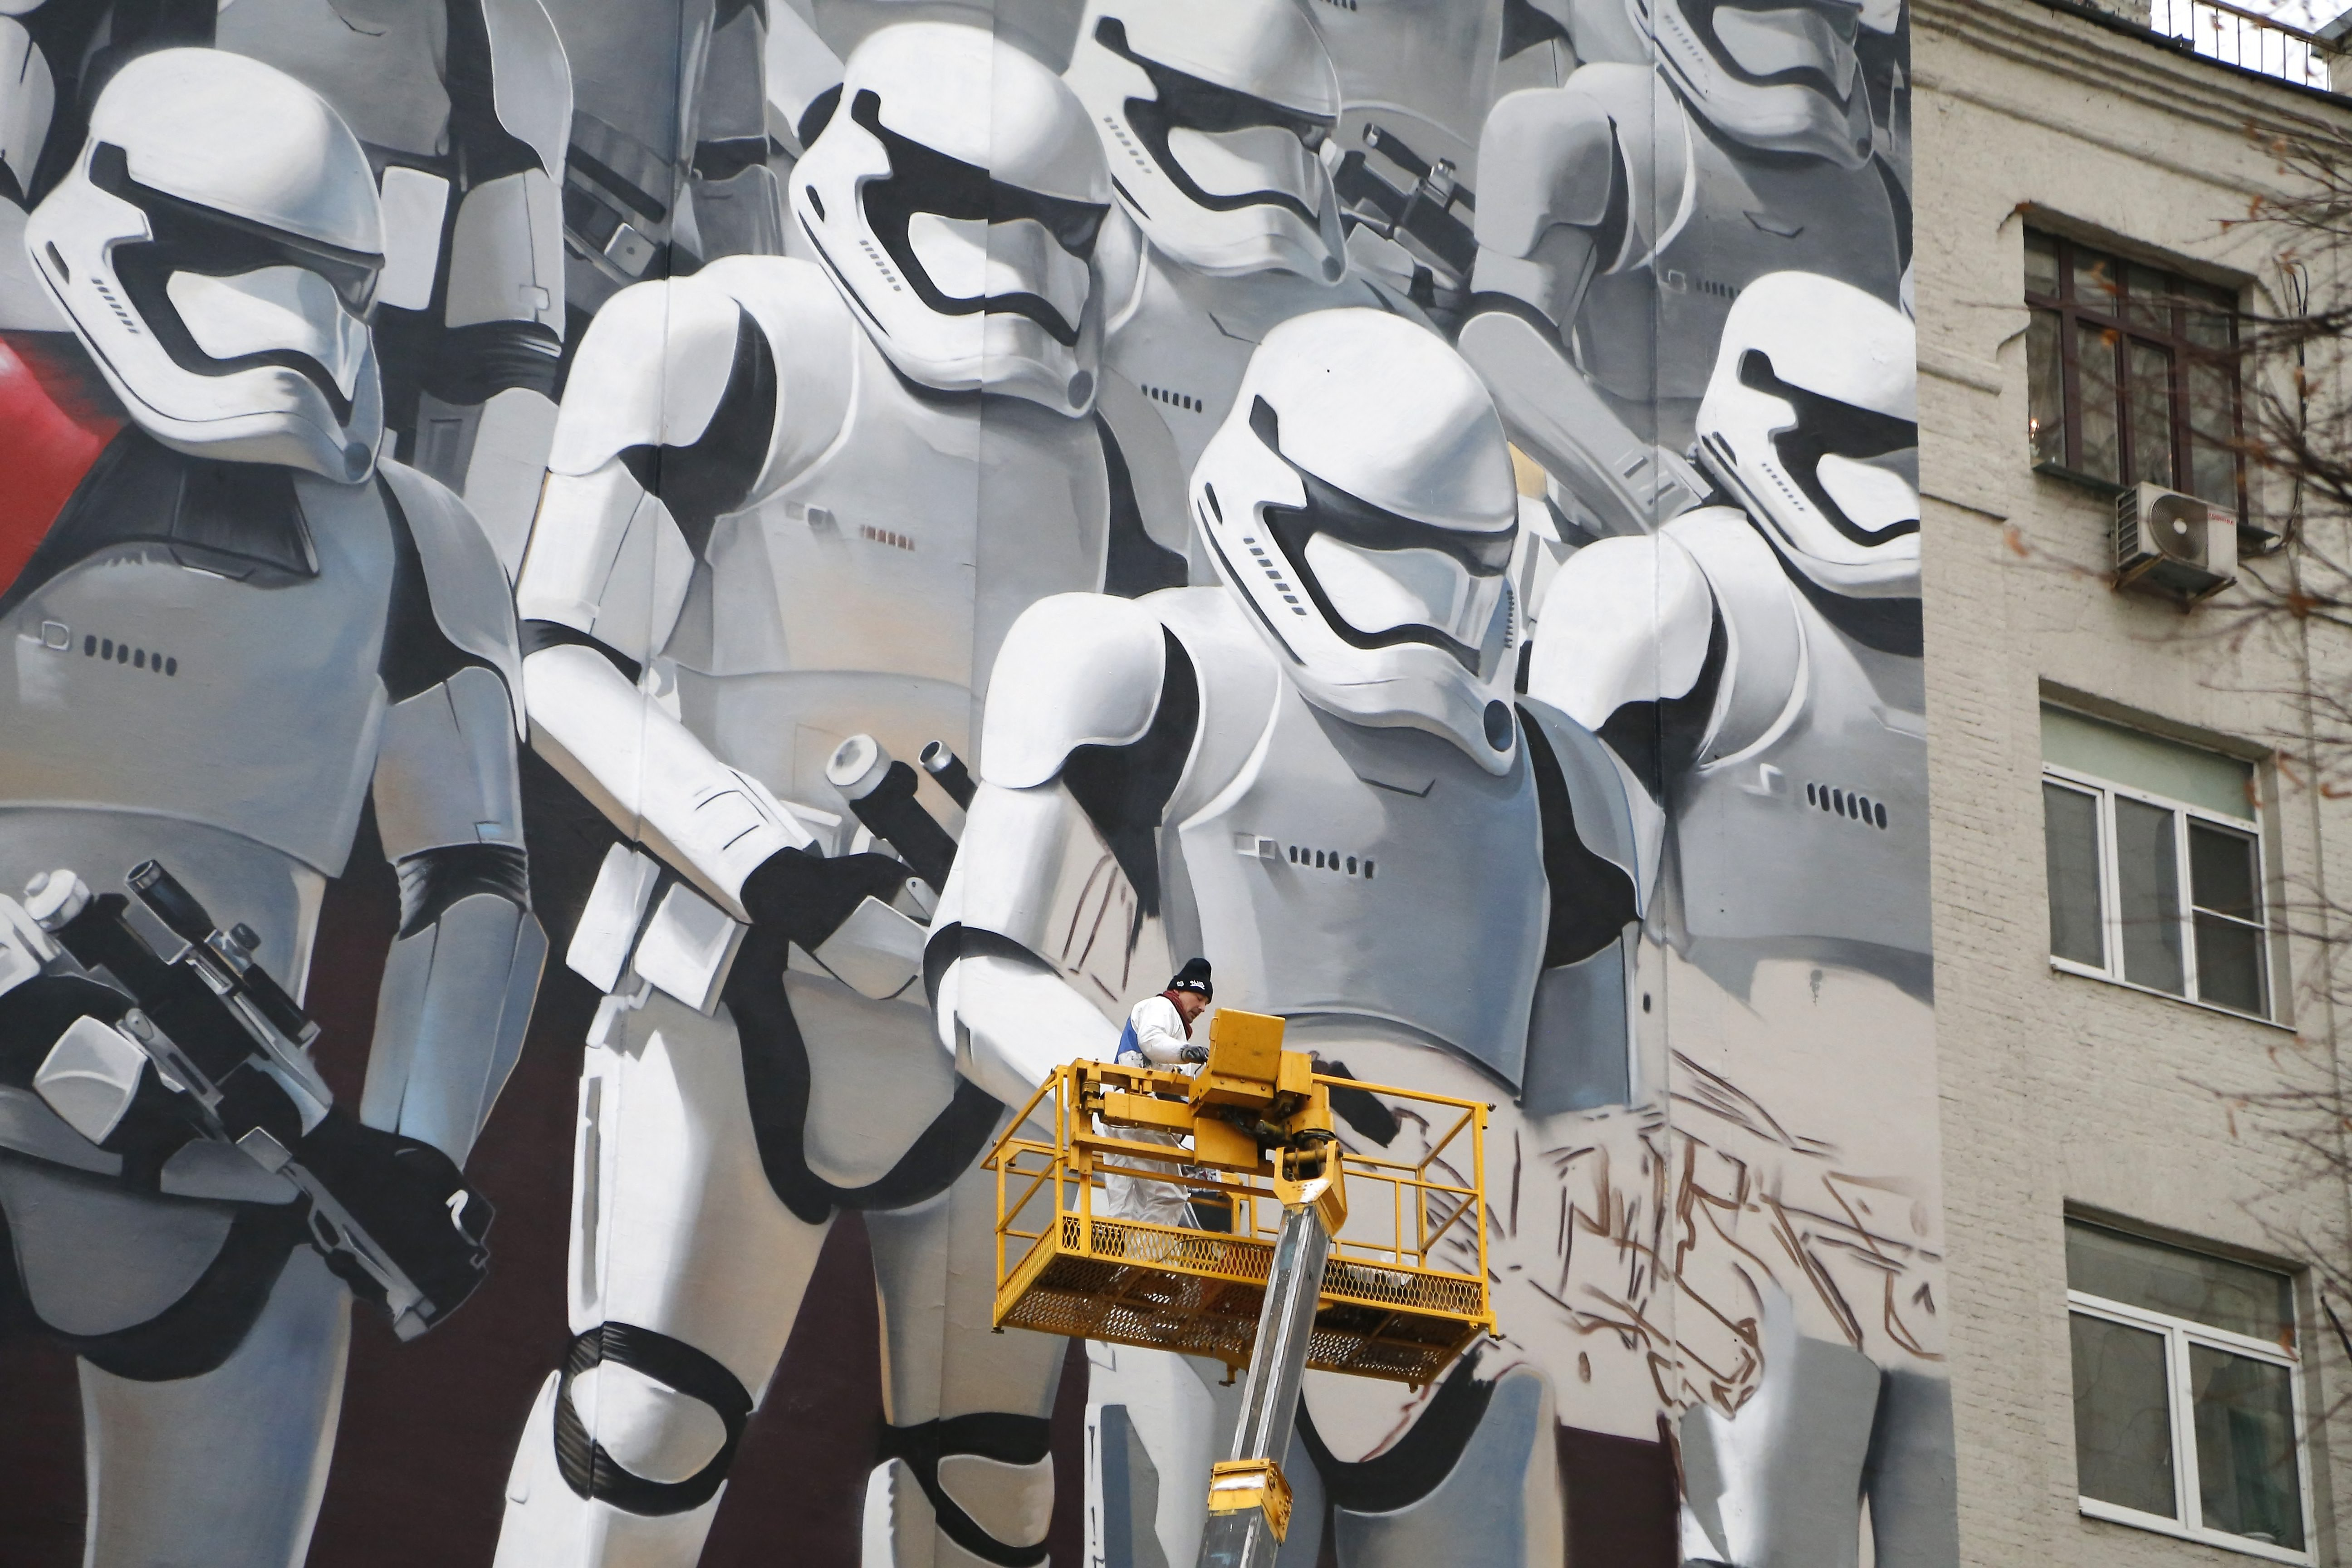 Artist Artur Kashak paints a graffiti depicting stormtroopers of the Imperial armed forces from the Star Wars movie series on a wall of a house in Moscow, Russia.